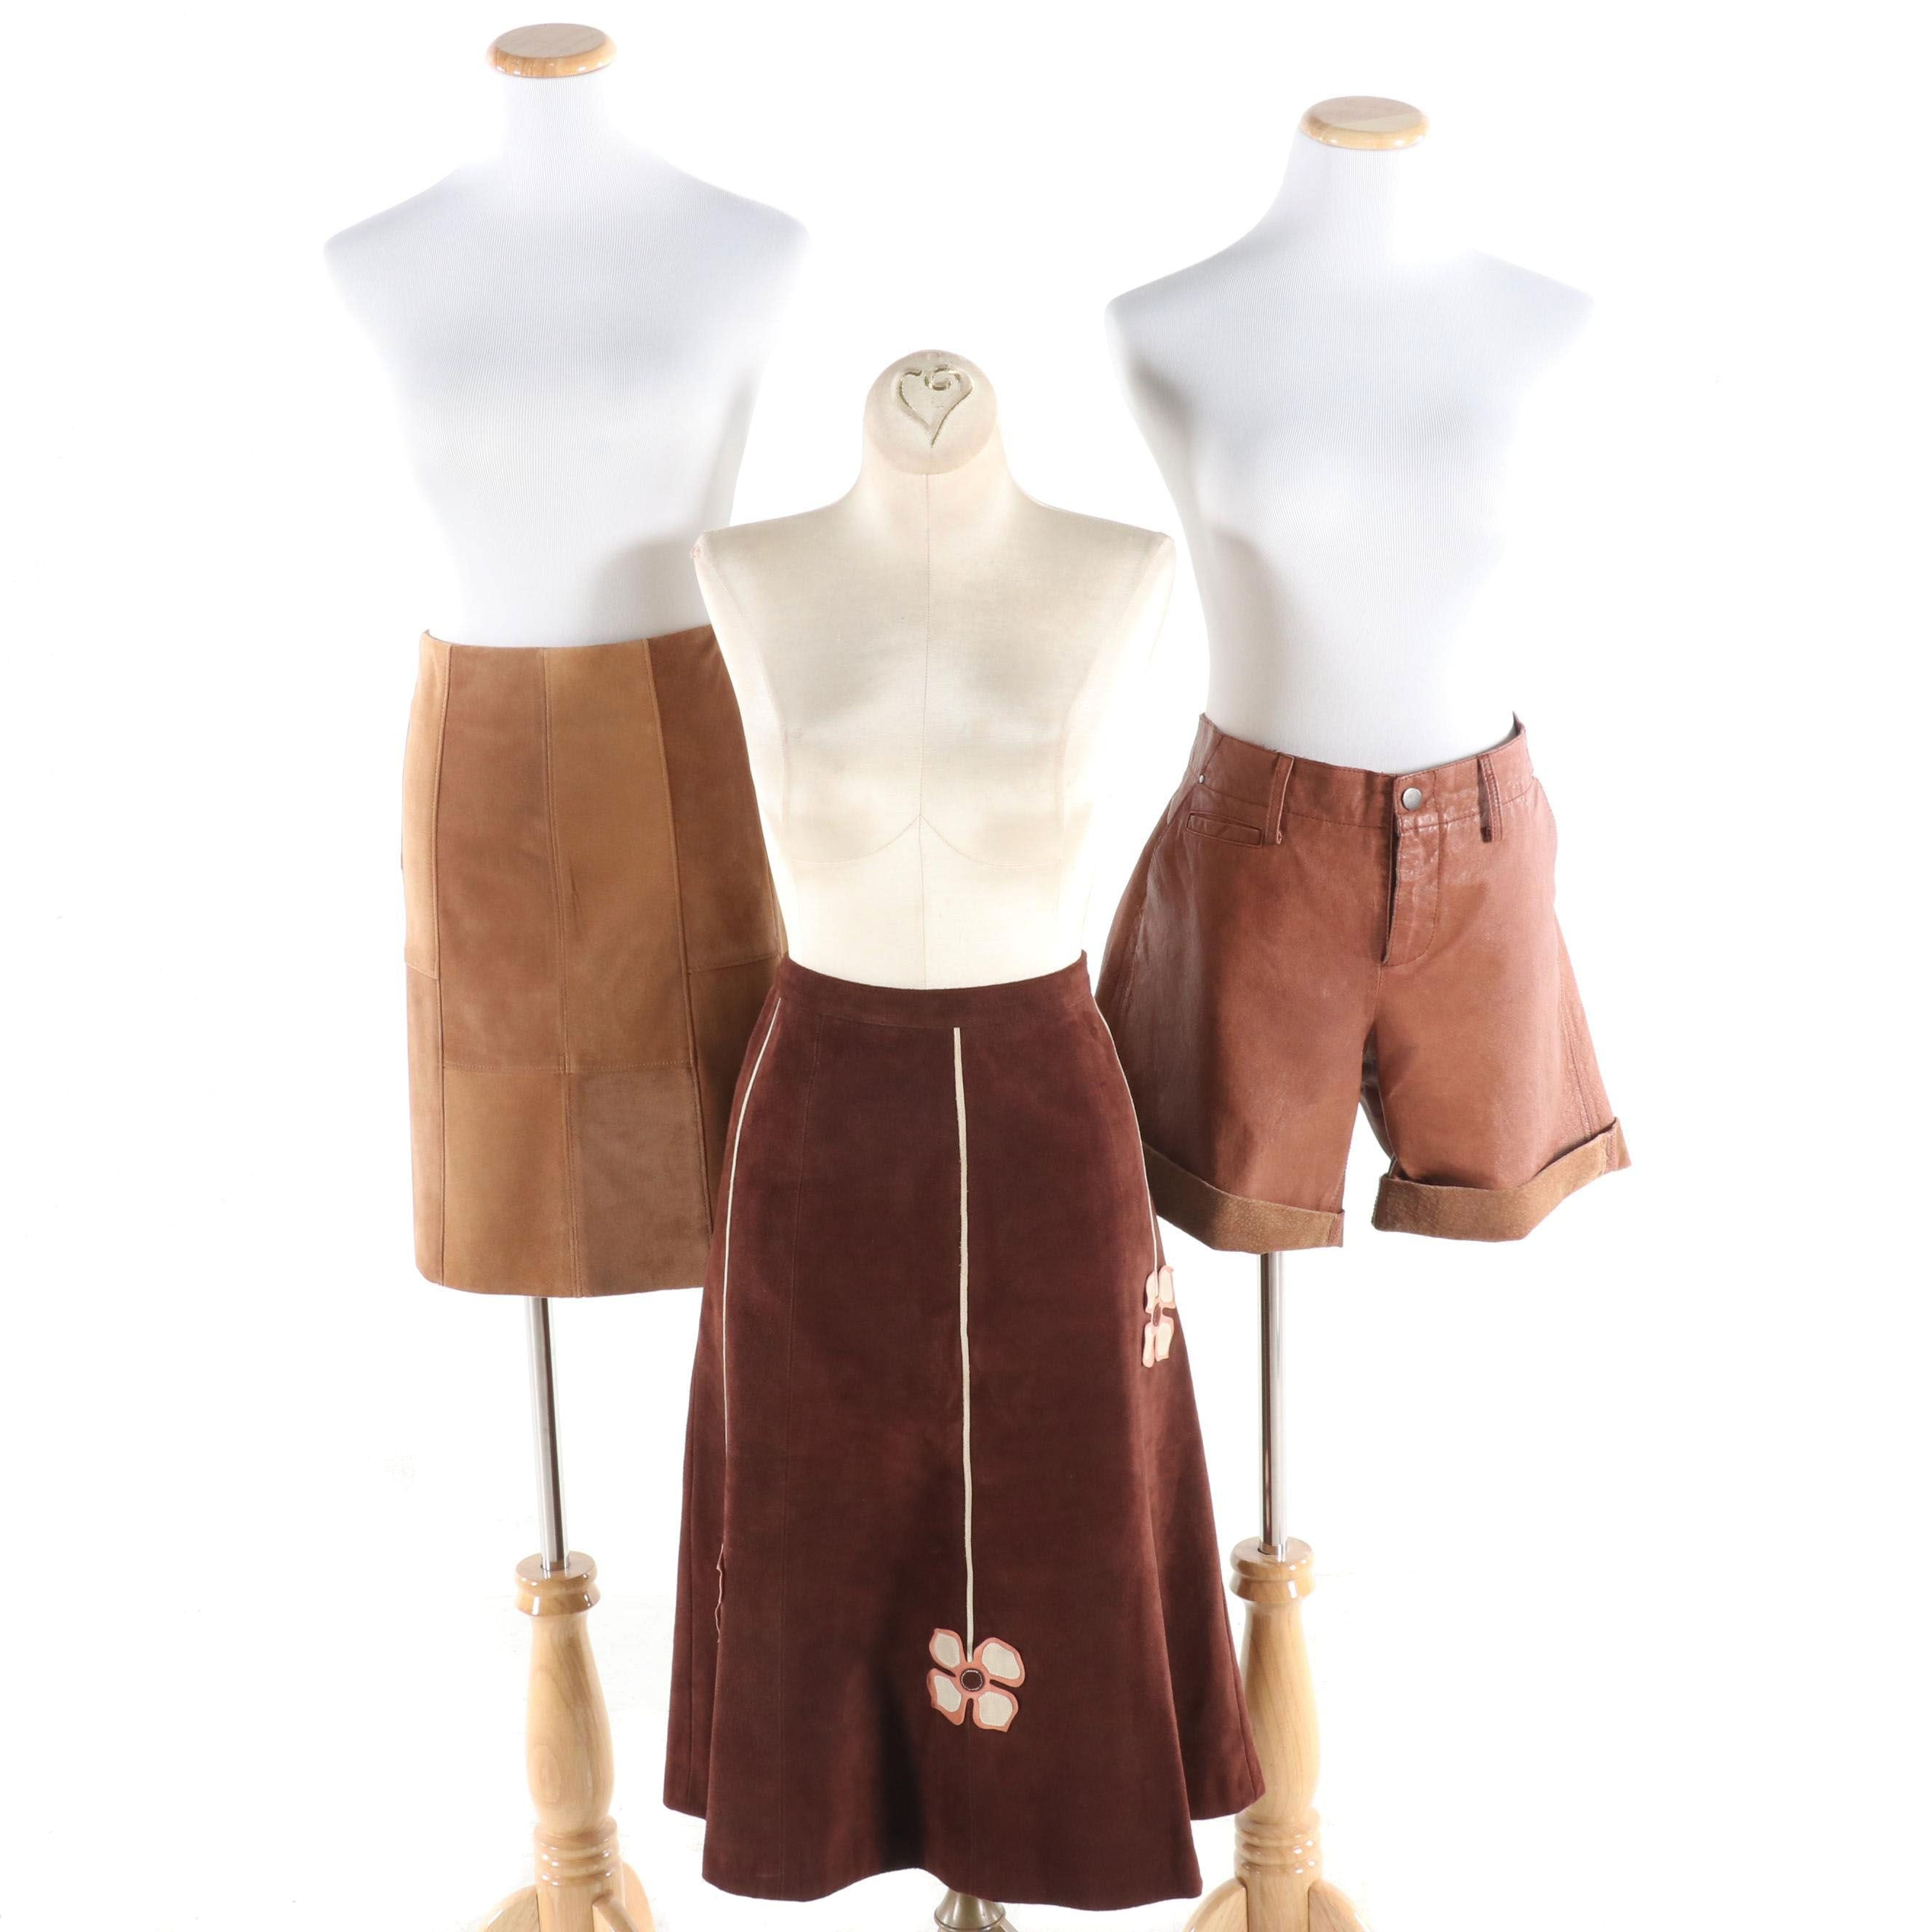 Suede Skirts and Leather Shorts Including Jaket...Etc., Tocca and Yansi Fugel